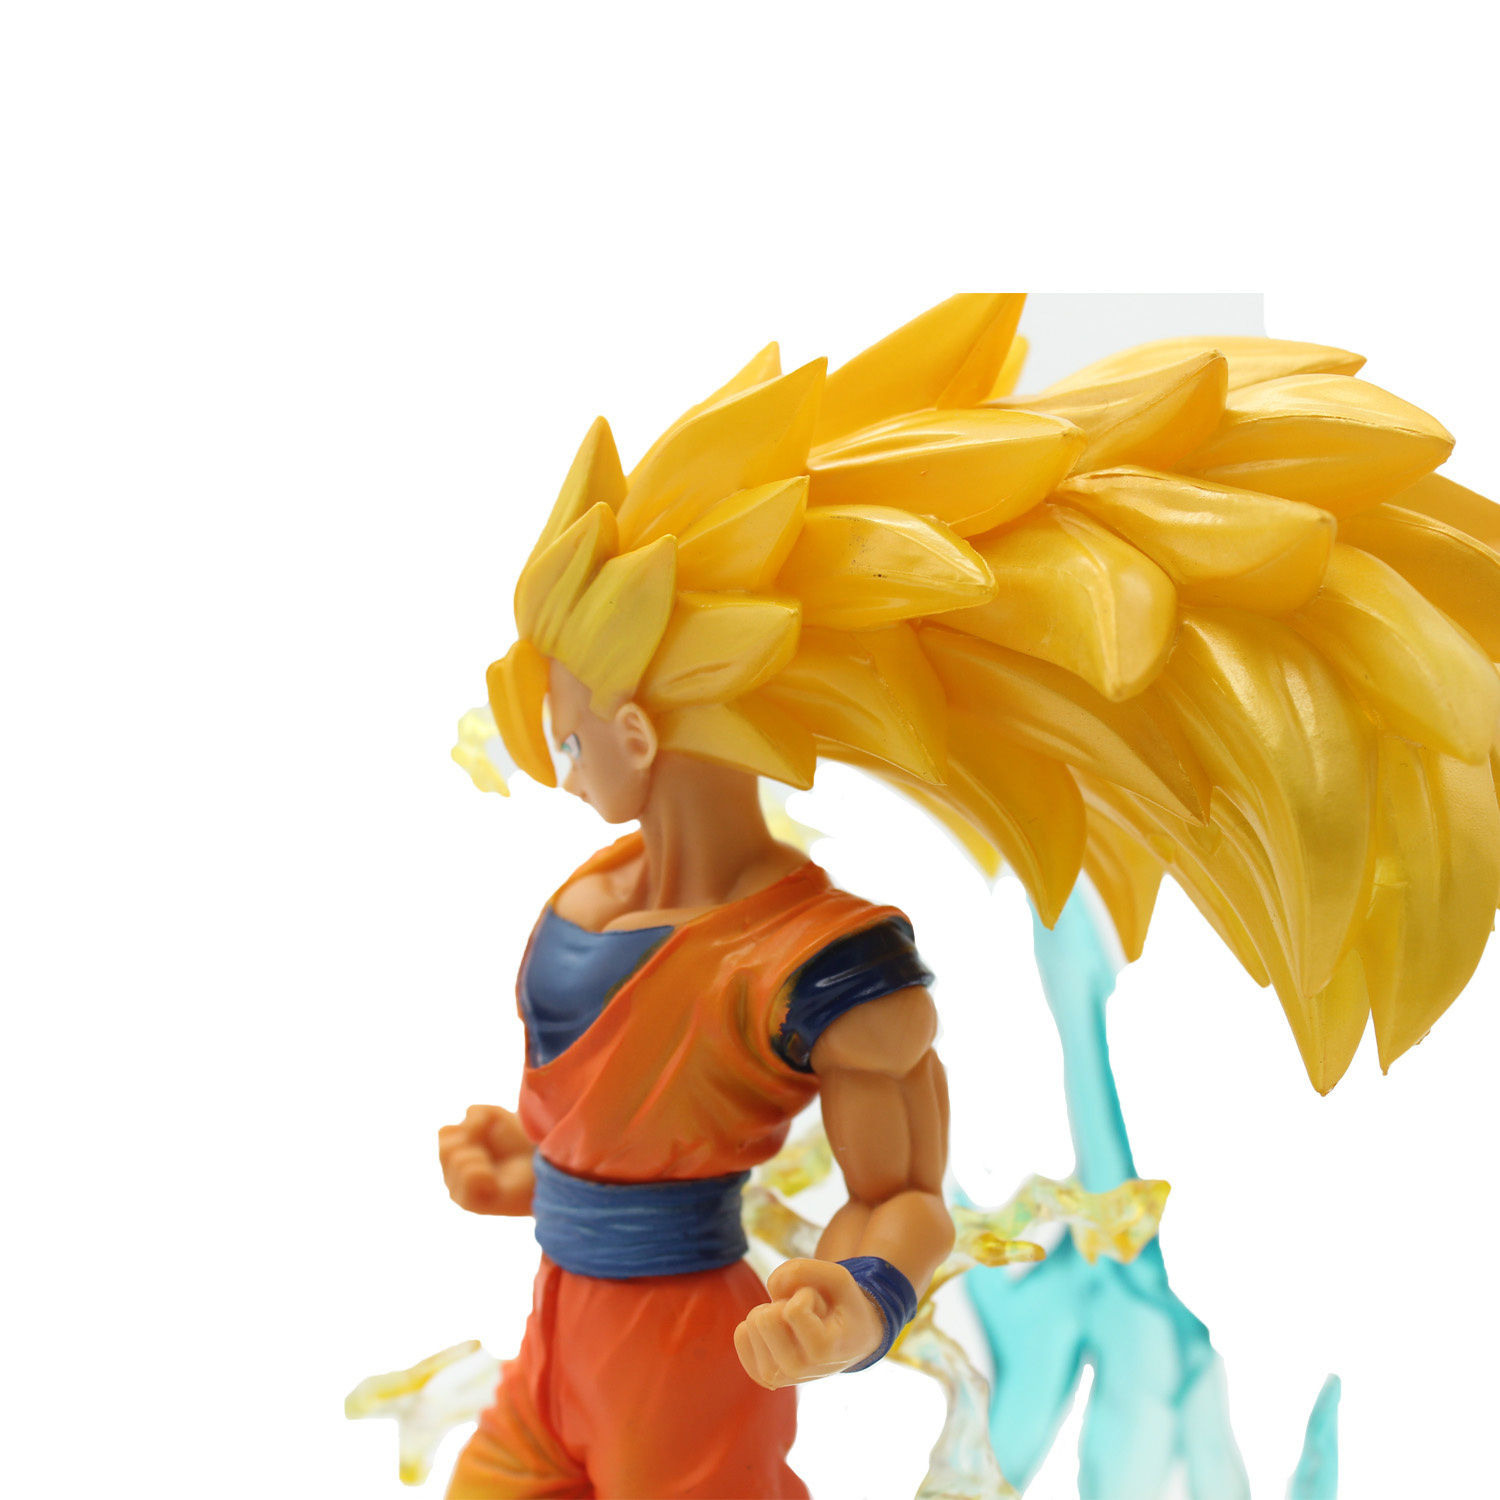 Chanycore 18cm japanese anime dragon ball z super saiyan 3 son goku chanycore 18cm japanese anime dragon ball z super saiyan 3 son goku gohan vegeta kakarotto action figure pvc model toy in action toy figures from toys thecheapjerseys Image collections